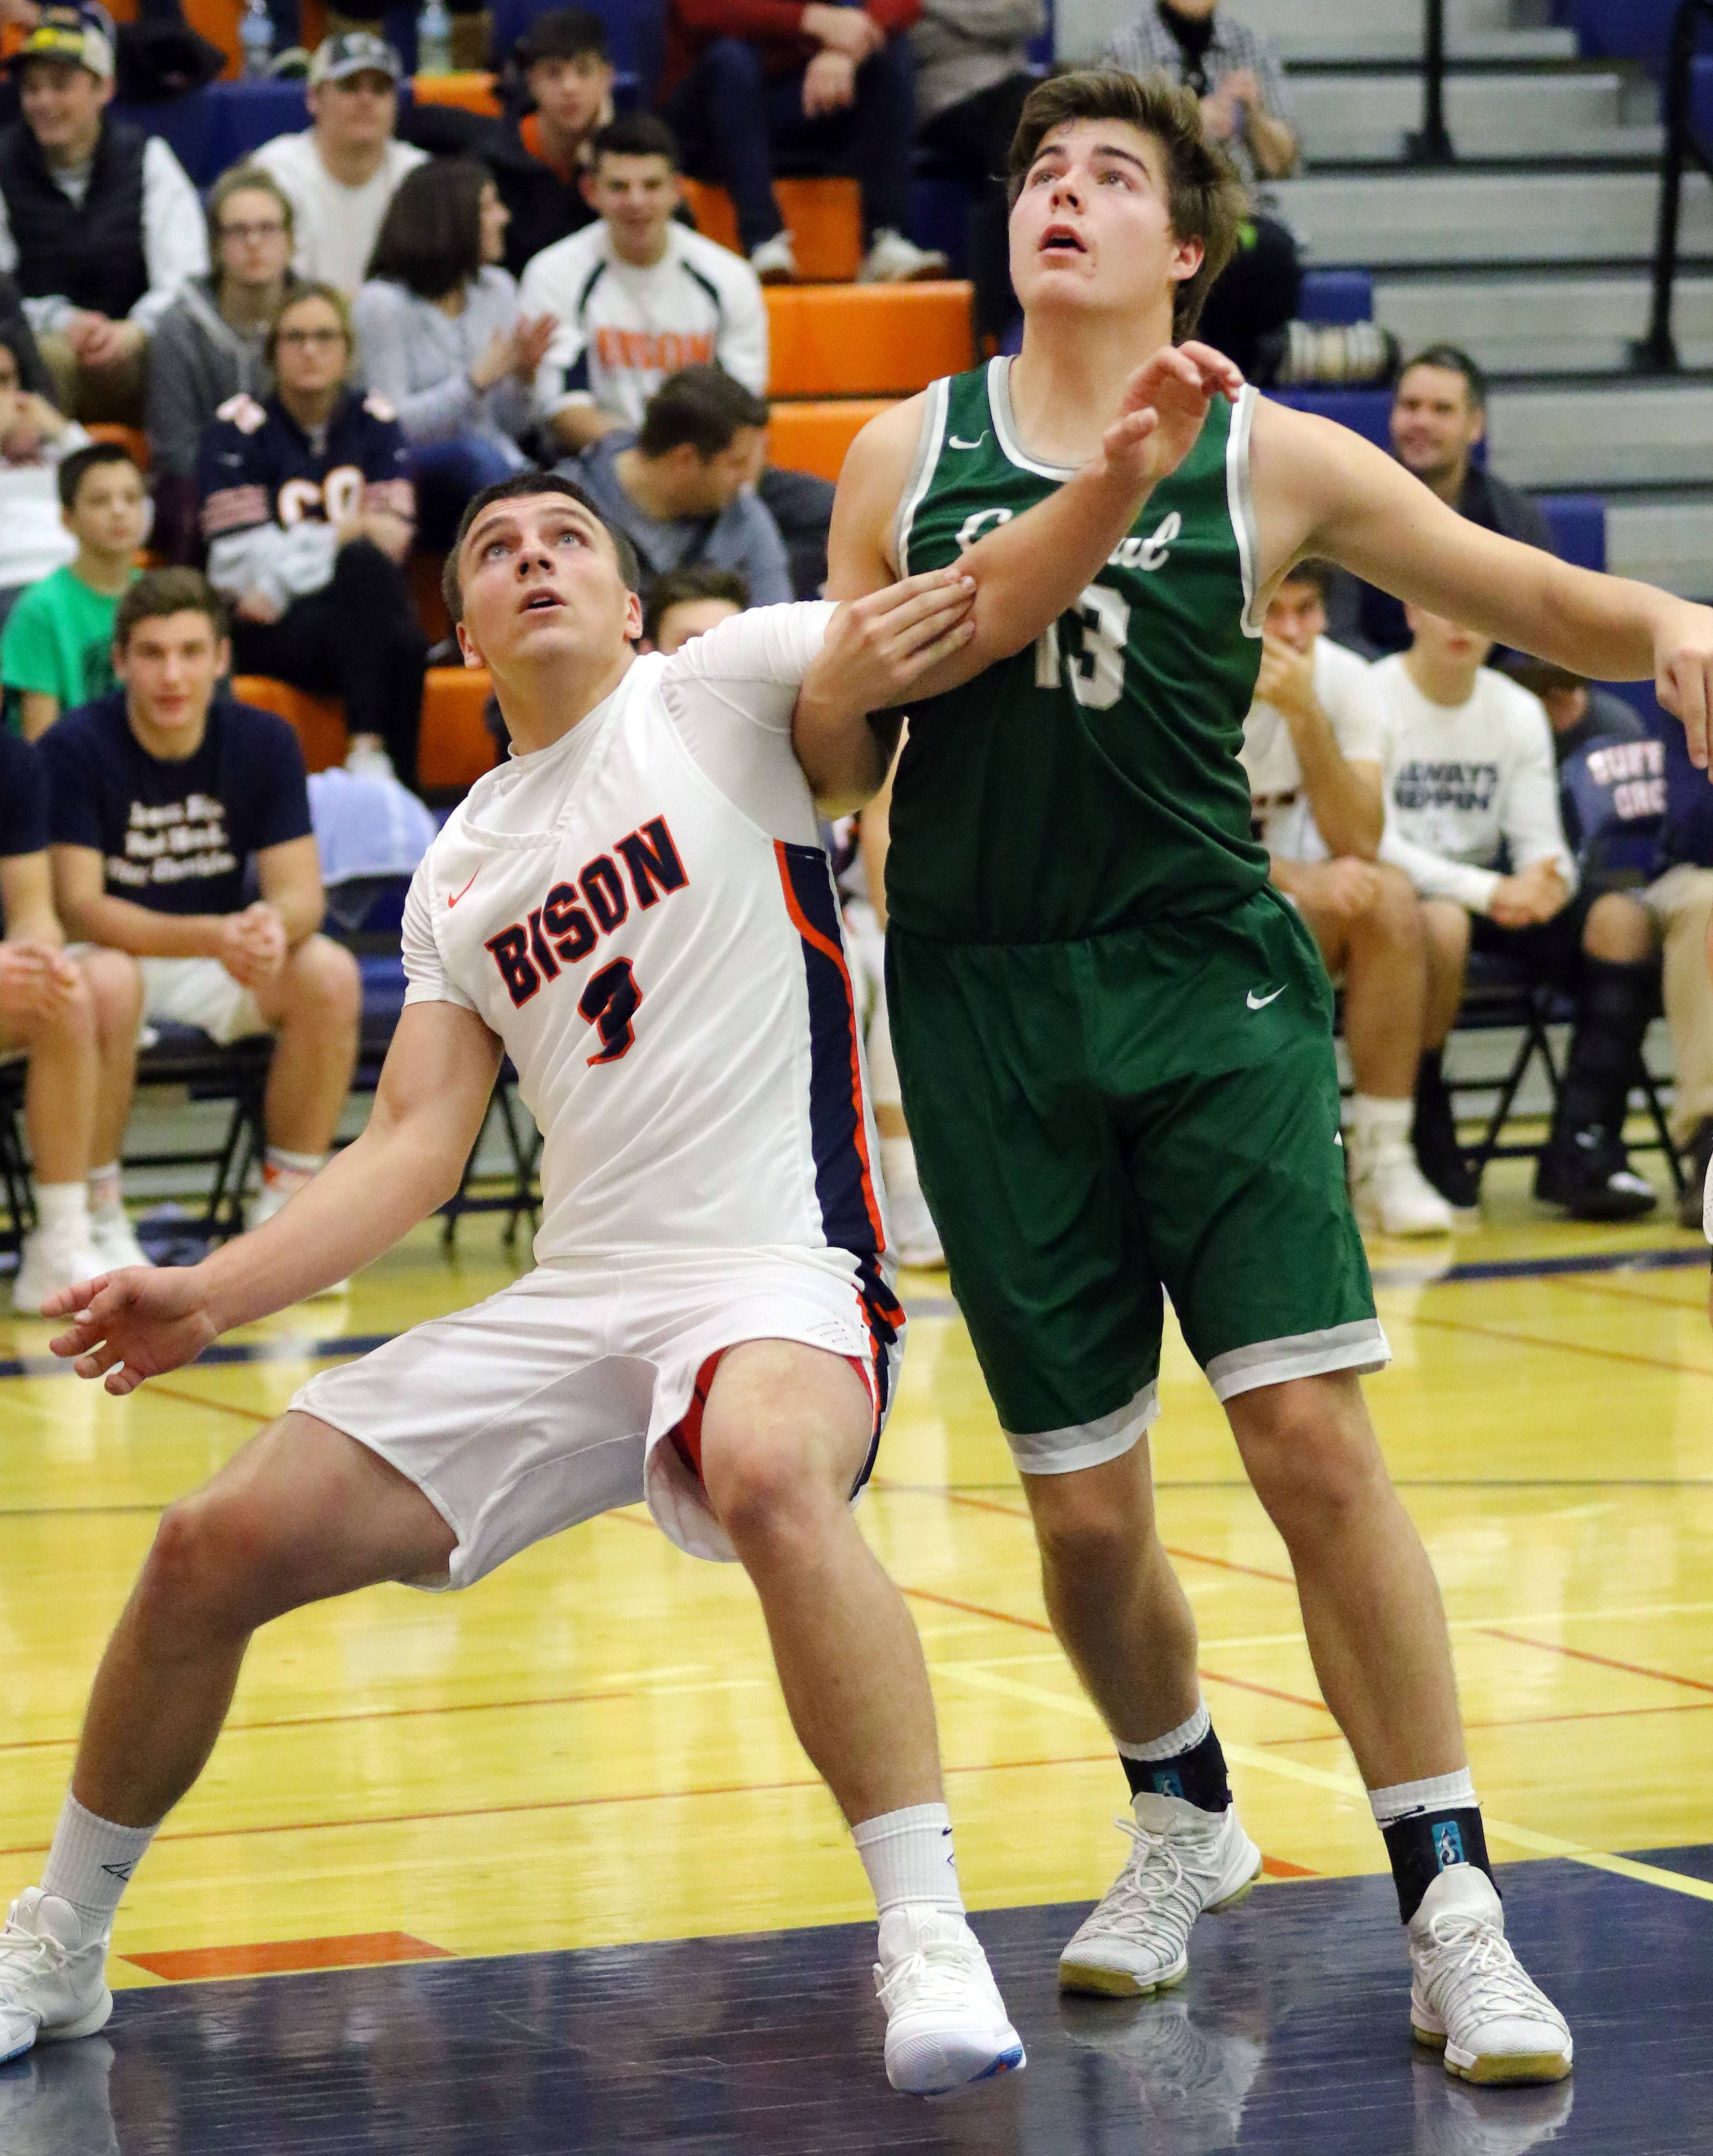 Buffalo Grove's Tom Trieb, left, and Grayslake Central's Jack Spaulding battle for position Monday night at Buffalo Grove.